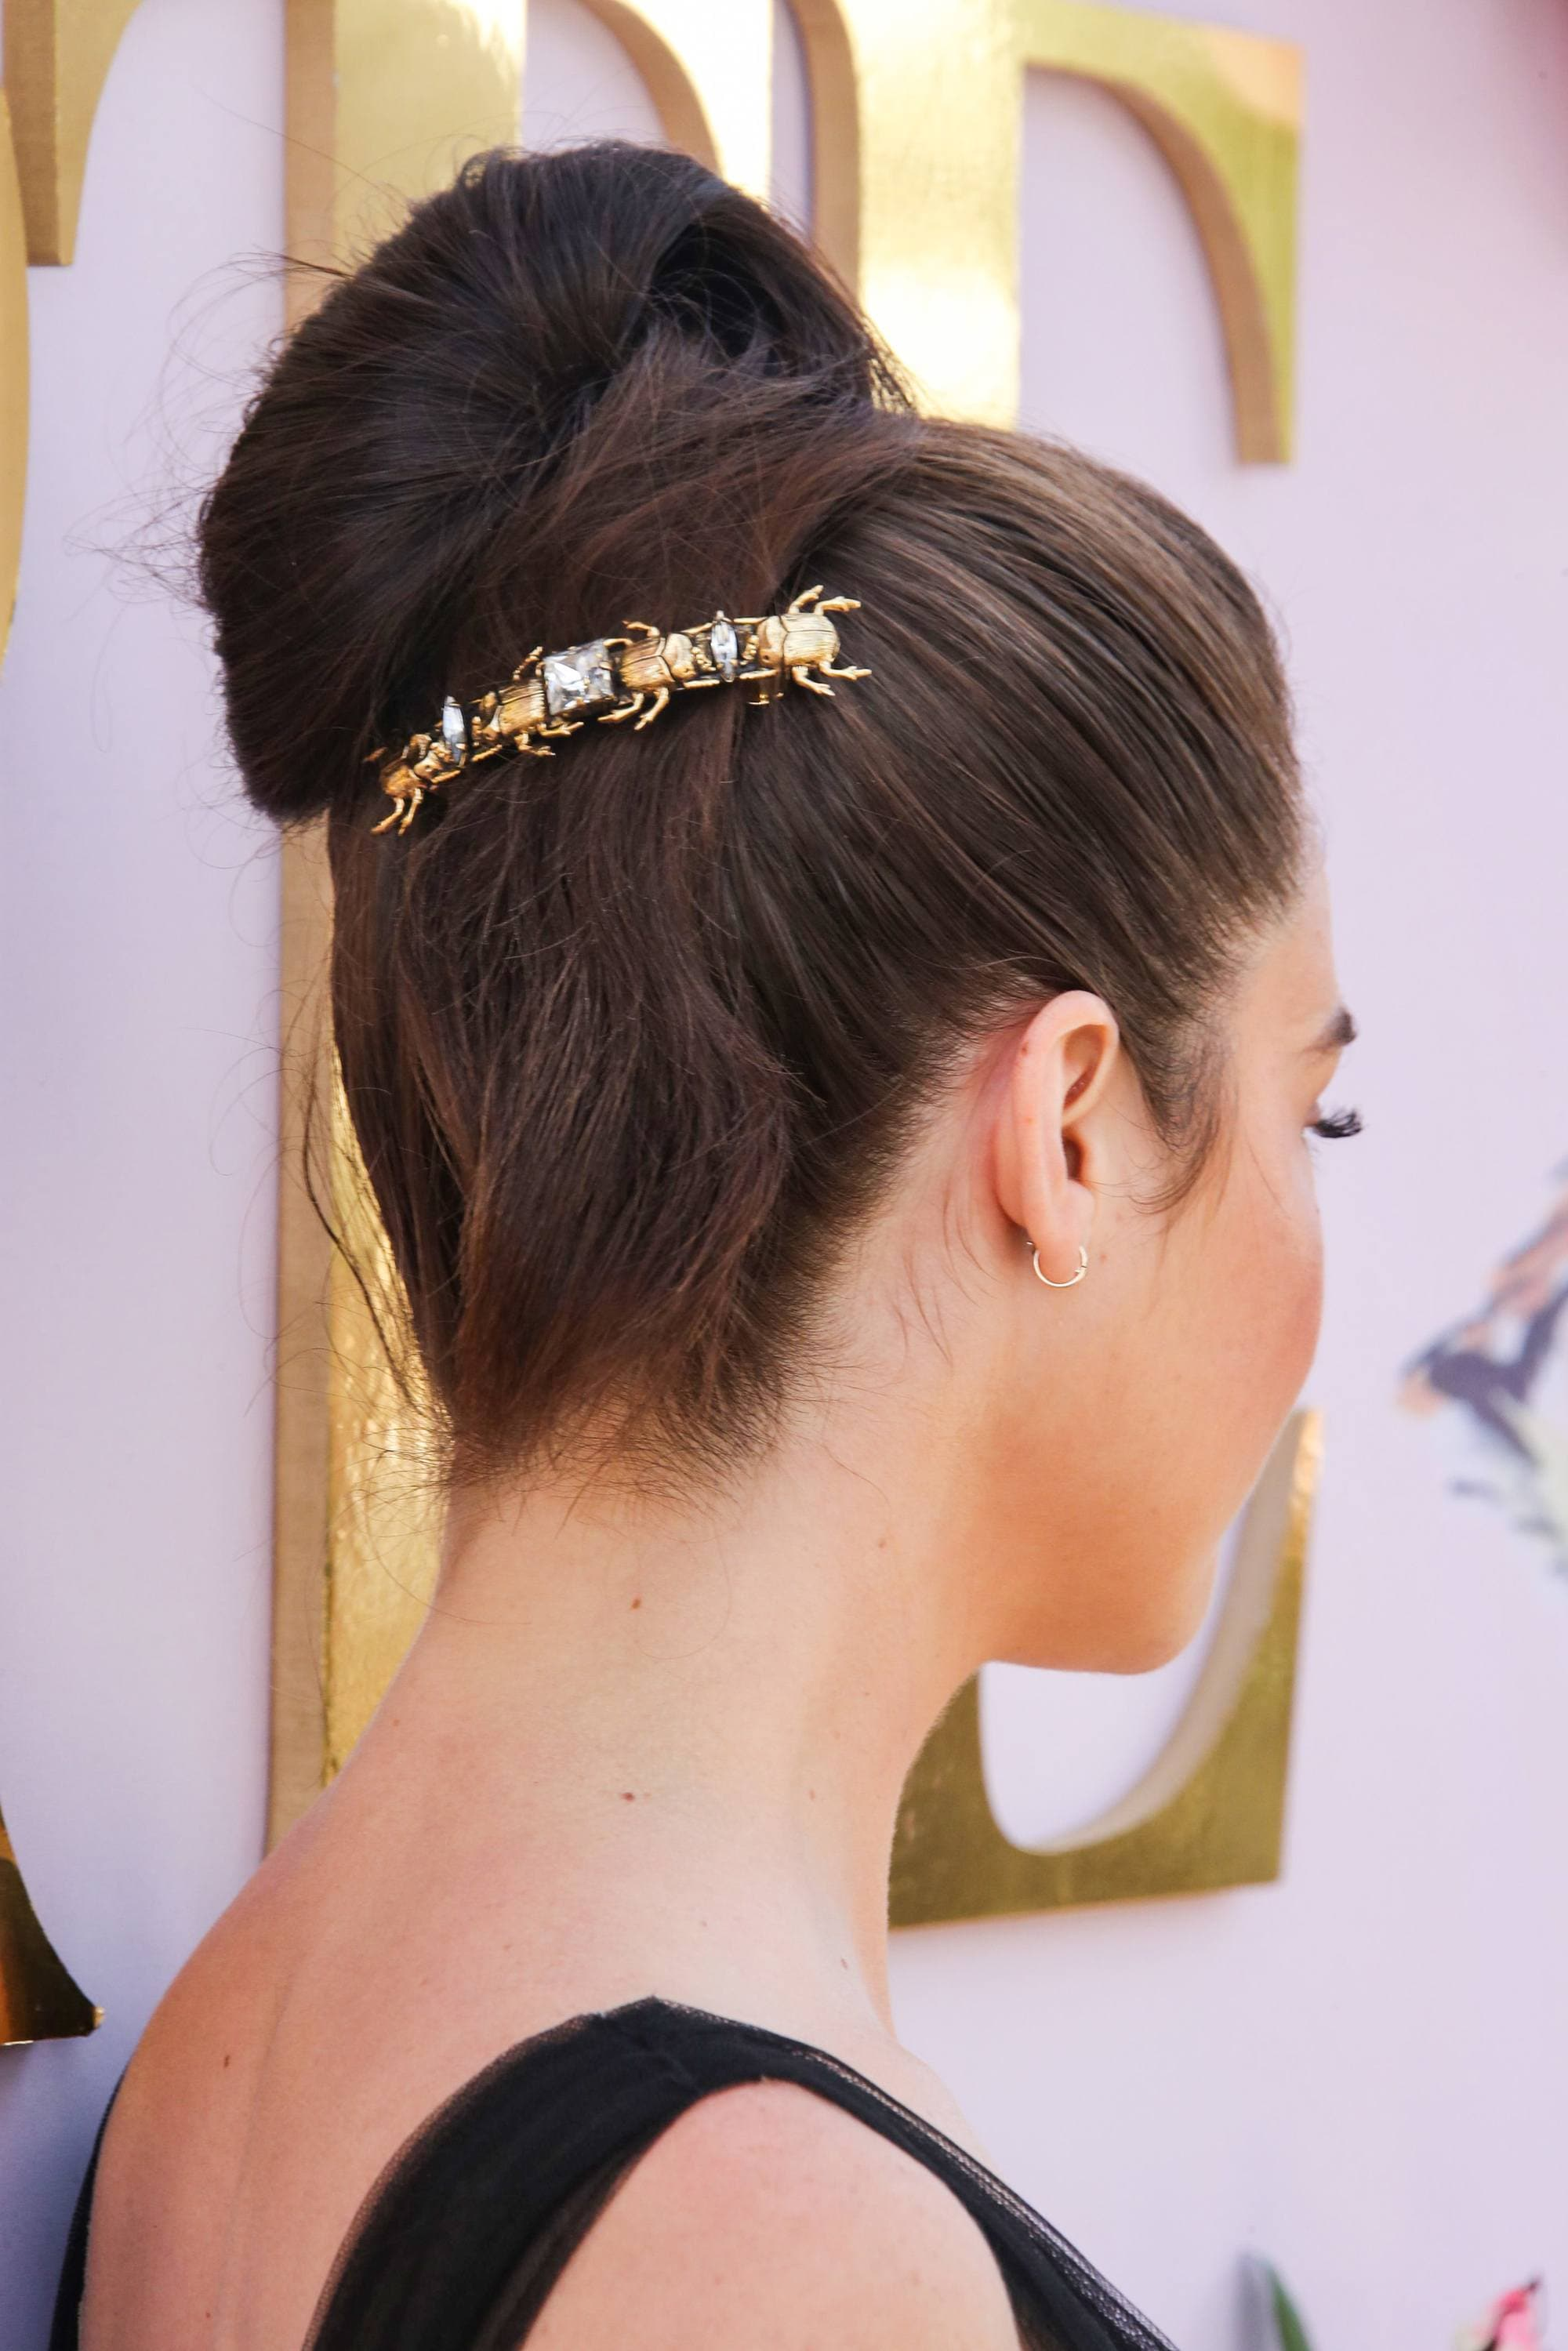 Thick hairstyles: Back shot of woman with smooth thick hair styled into a ballerina bun with barrette